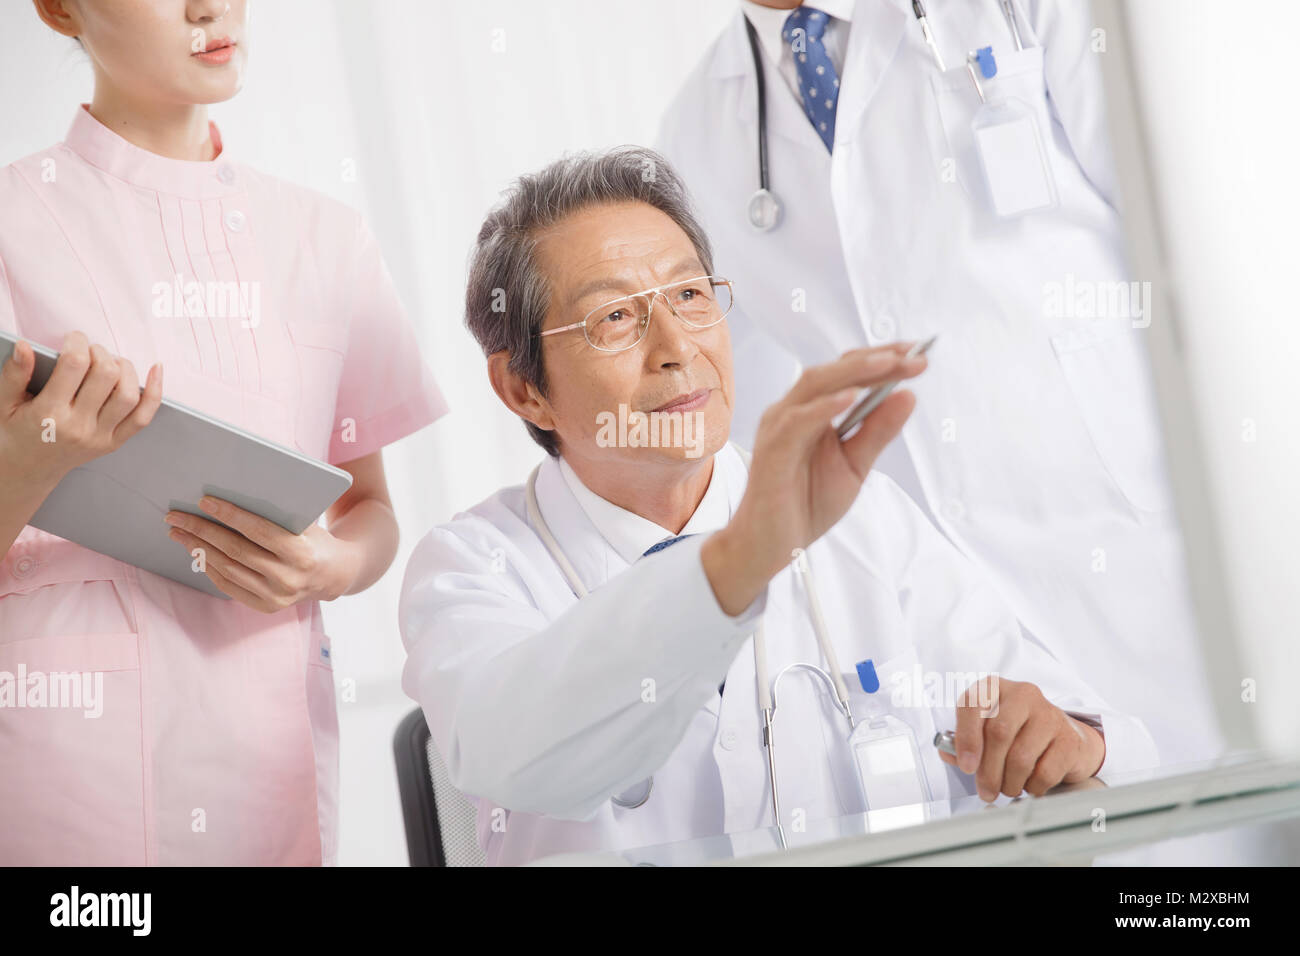 The doctor discussed at the meeting - Stock Image